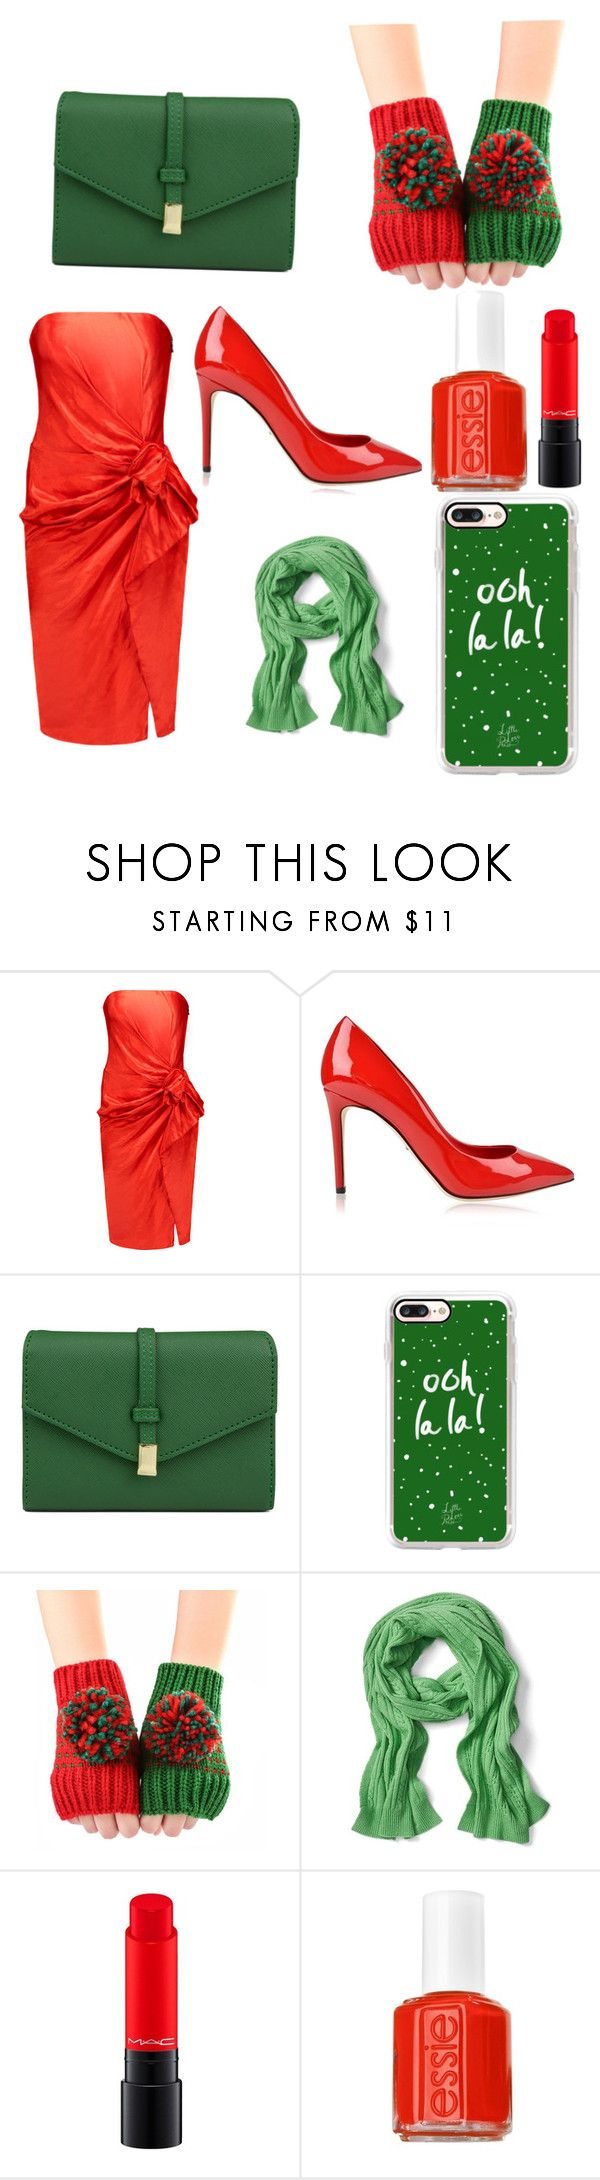 """""""Red and Green,What does that mean?"""" by lgroezinger-1 ❤ liked on Polyvore featuring Lanvin, Dolce&Gabbana, Mundi, Casetify, Banana Republic, MAC Cosmetics and Essie"""